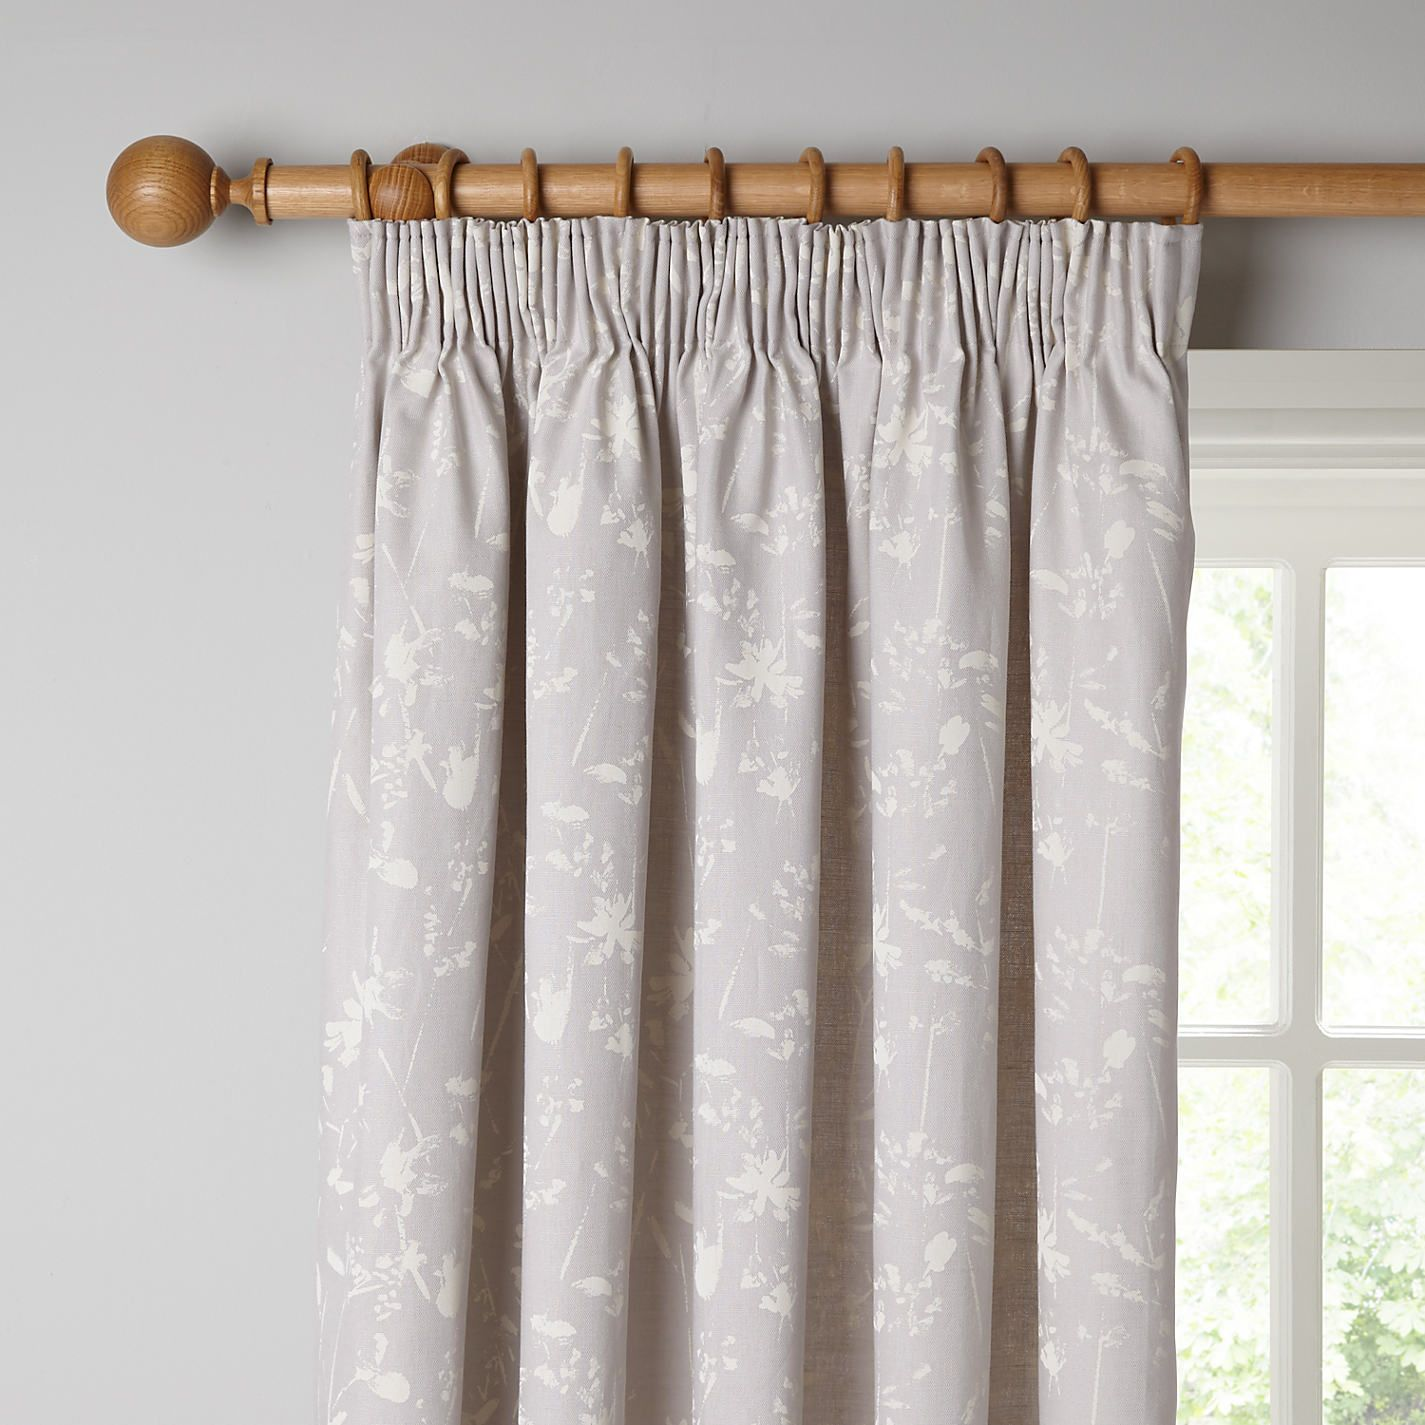 Buy John Lewis Croft Collection Freya Lined Pencil Pleat Curtains  Grey  from our View all. Gloss Single Mirrored Bathroom Cabinet  Small   Tassels  Nice and